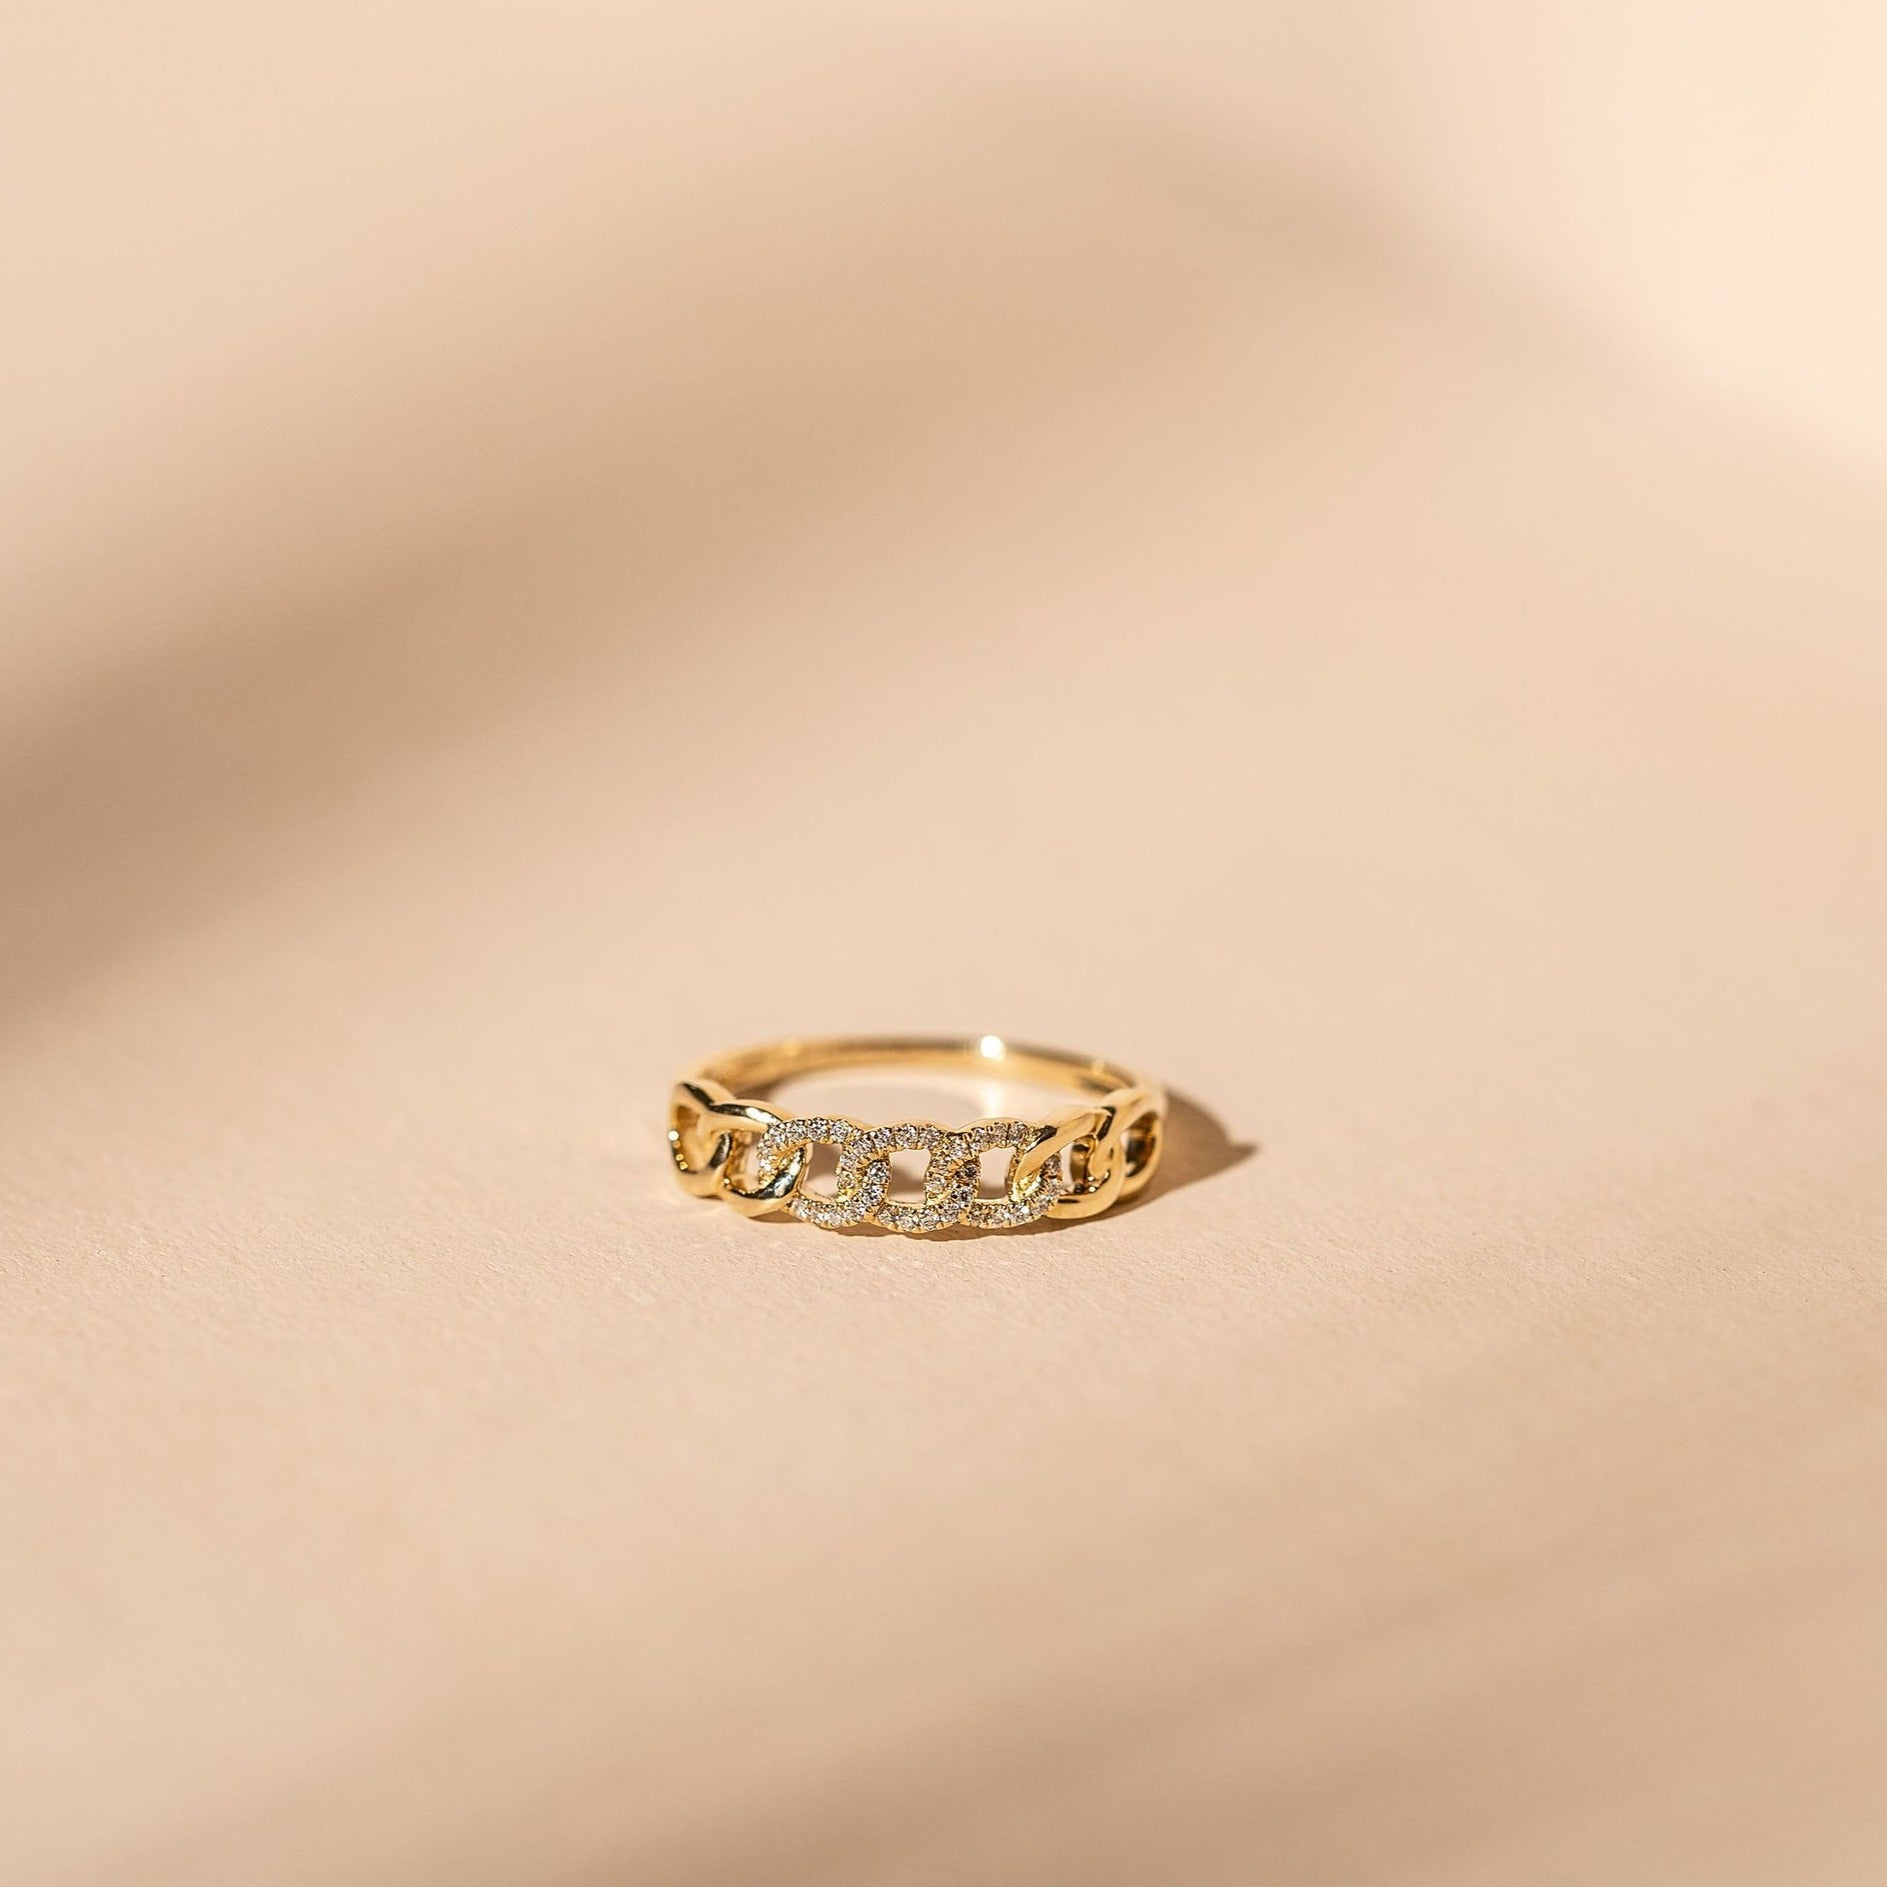 *Made to Order* Pave Love Knot Band - 14k Solid Gold